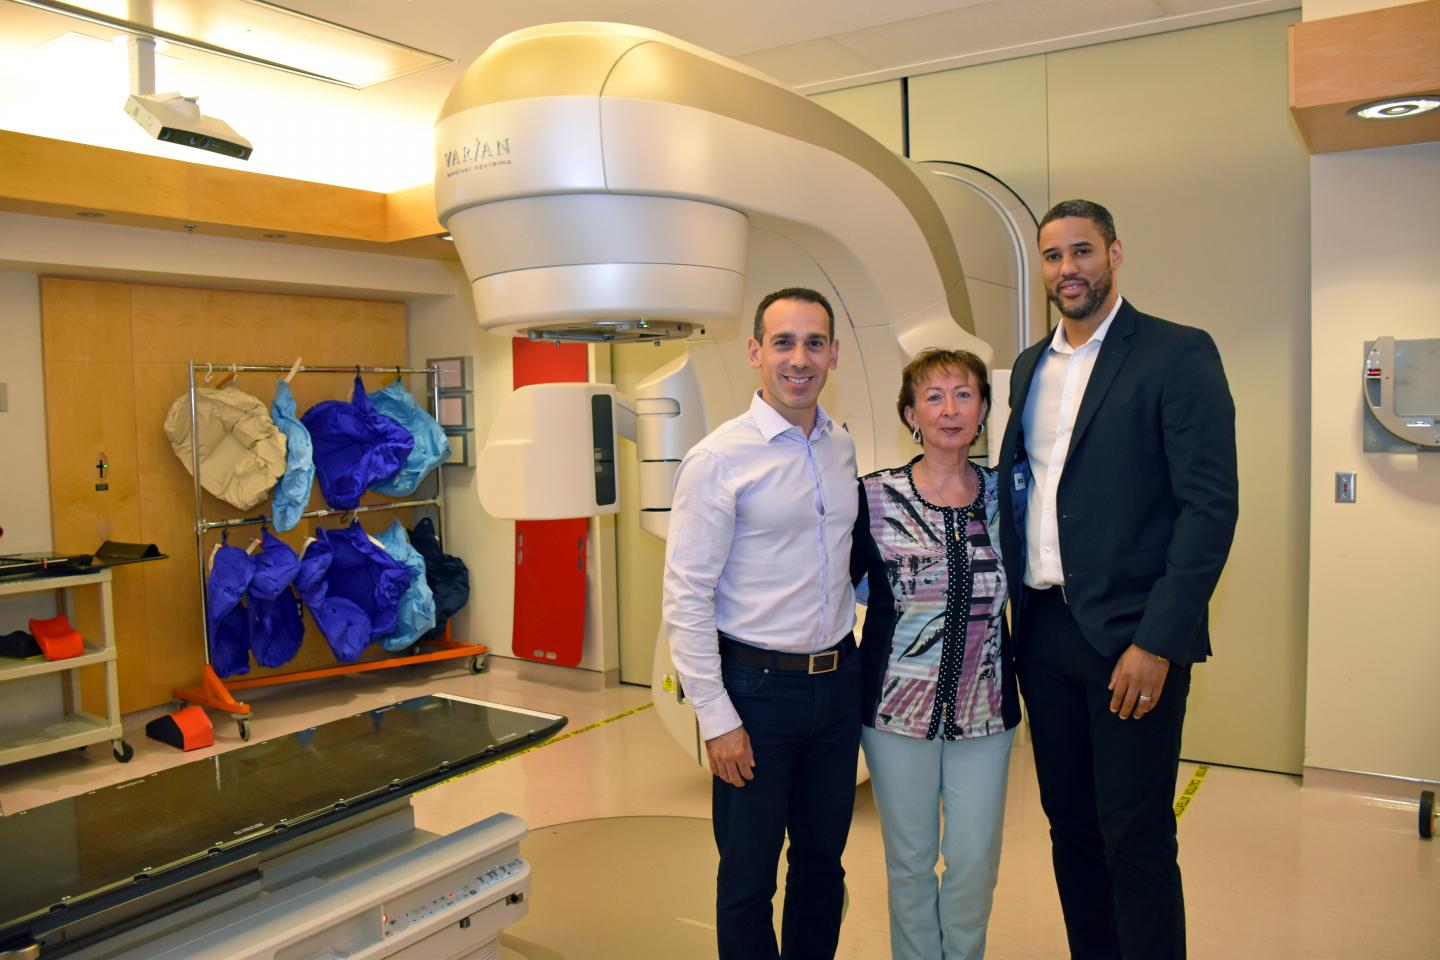 Dr. Palma, Betty and Dr. Nichols, Lawson Health Research Institute